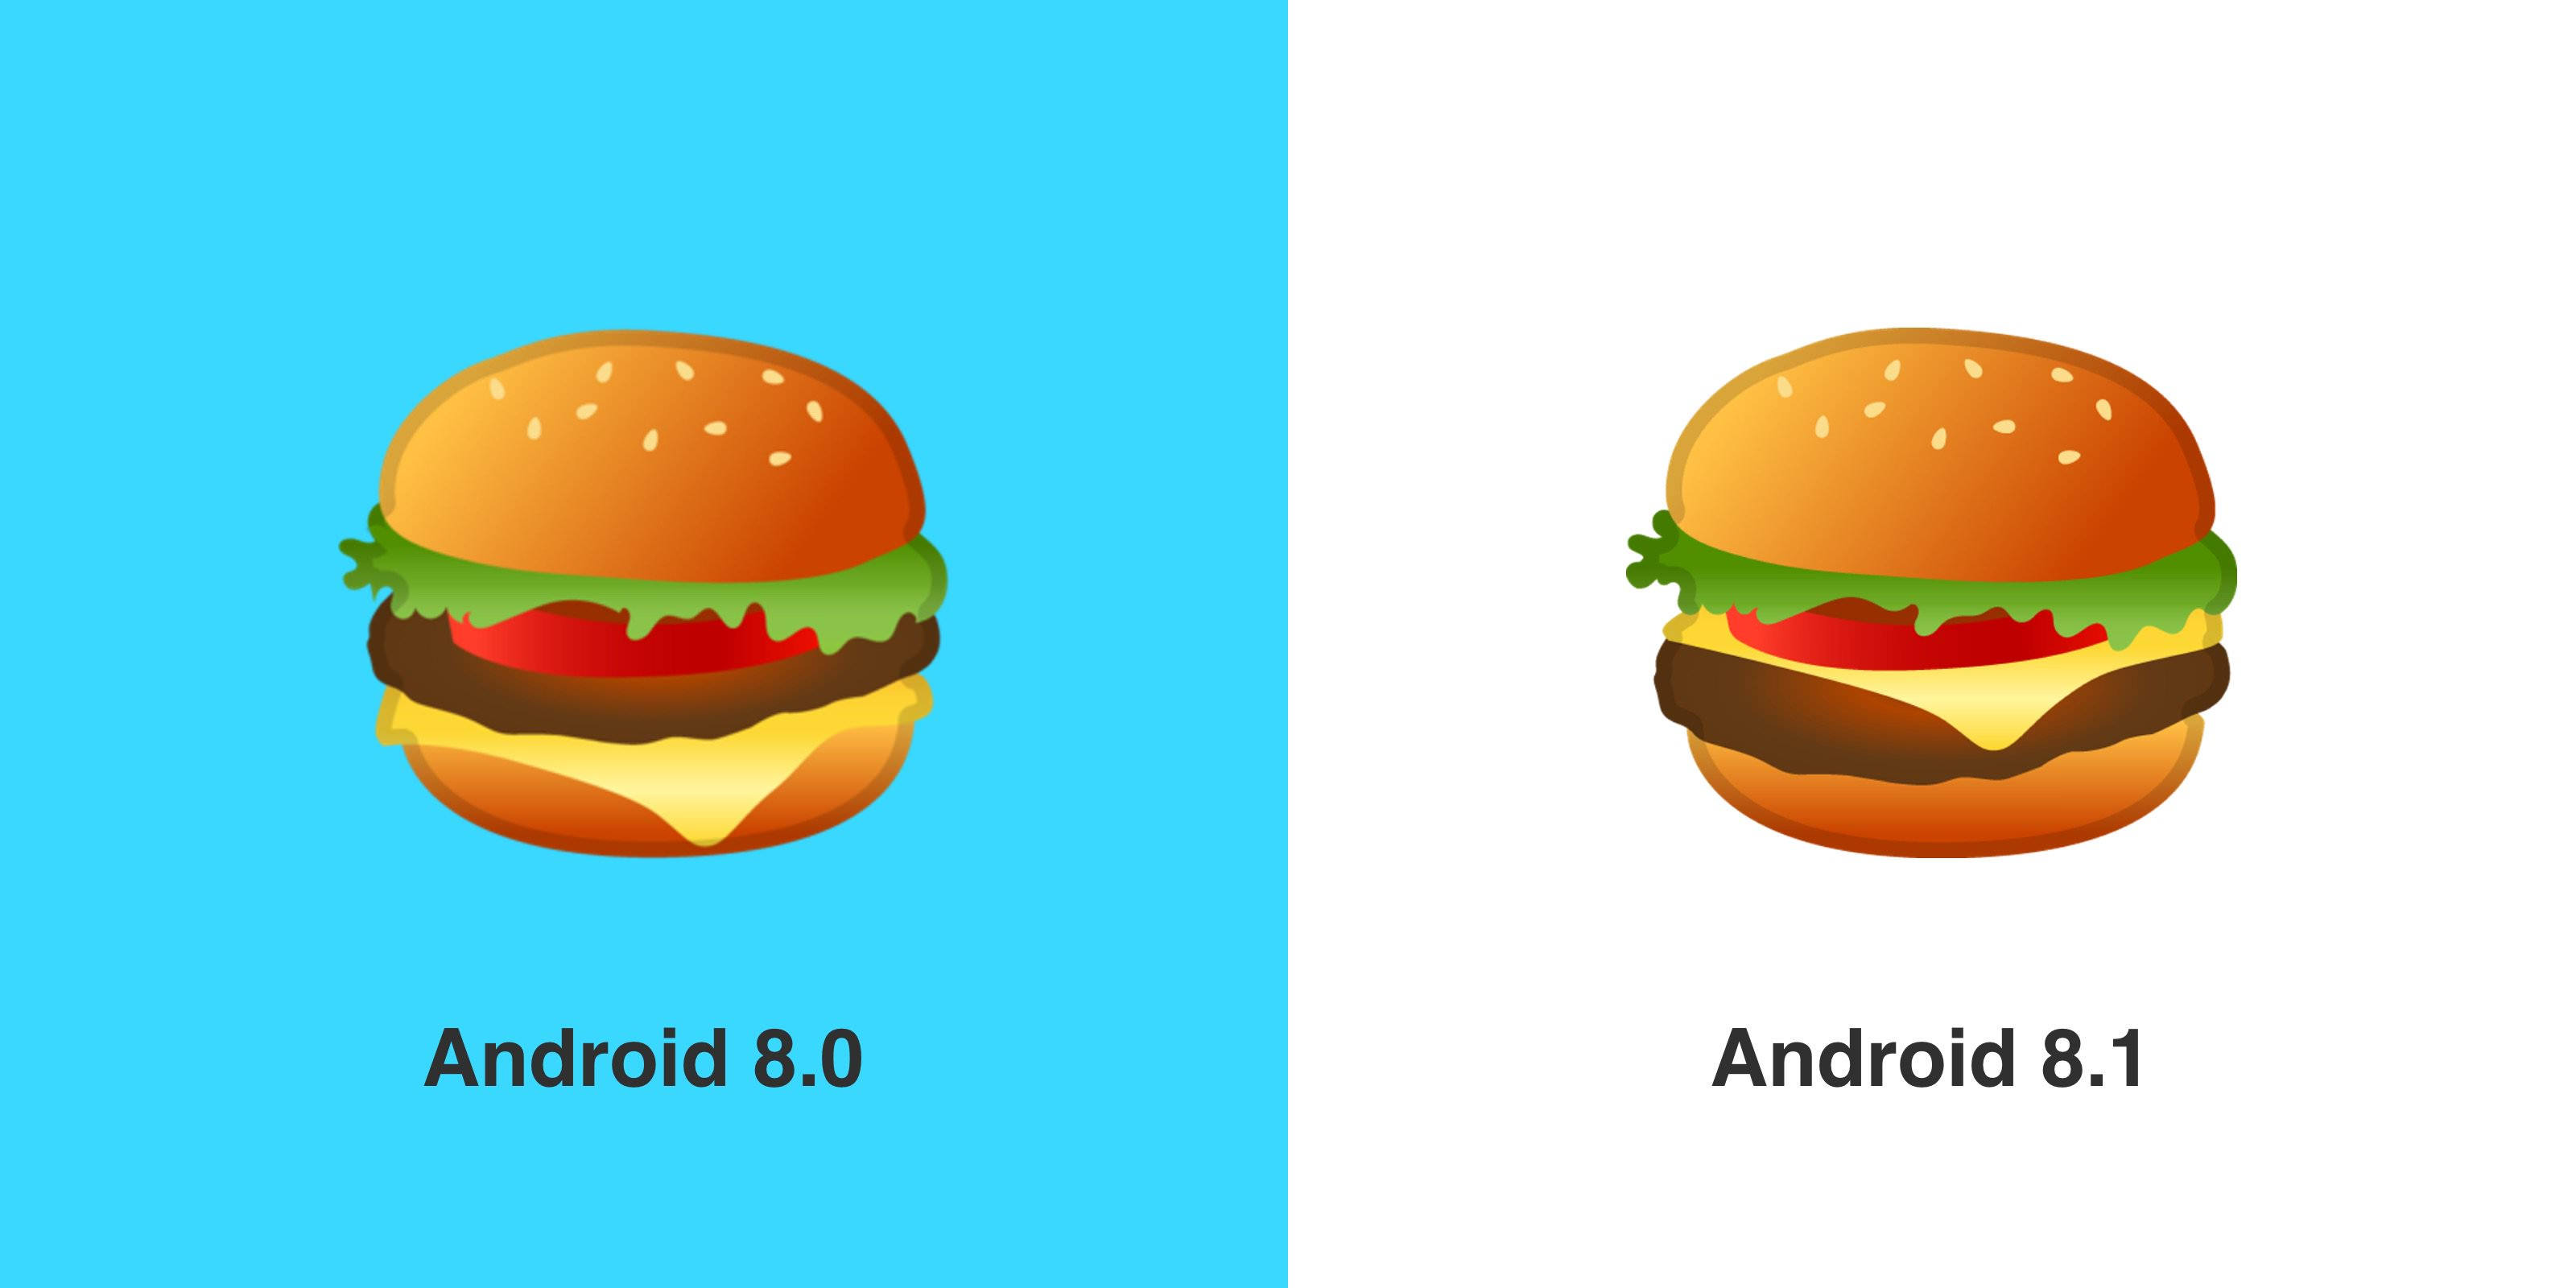 "alt=""Android 8.1 Burger"""